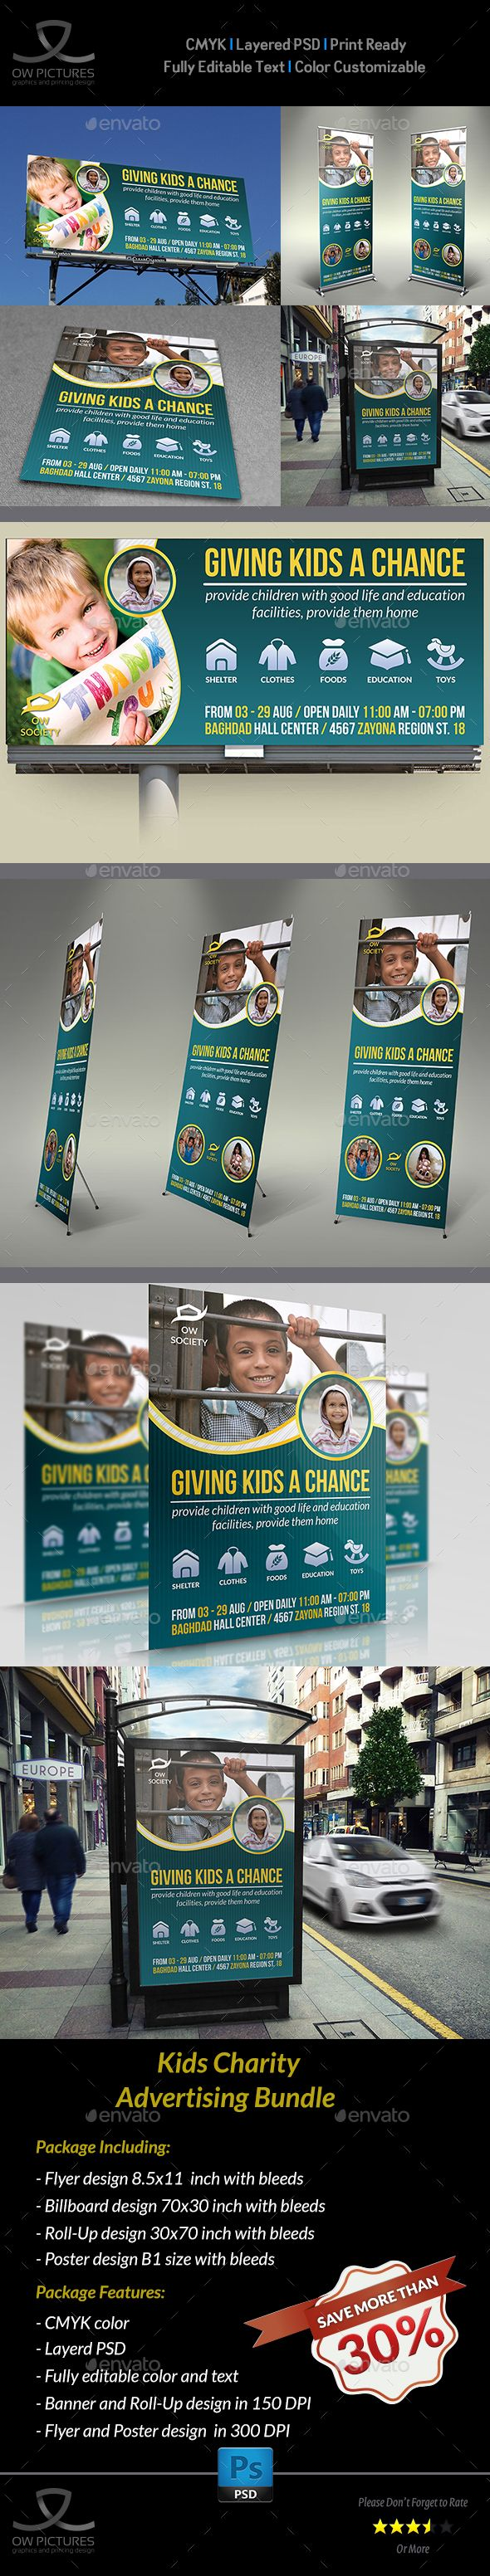 Kids Charity Advertising Bundle Template — Photoshop PSD #kindness #collage • Available here → https://graphicriver.net/item/kids-charity-advertising-bundle-template/13043758?ref=pxcr